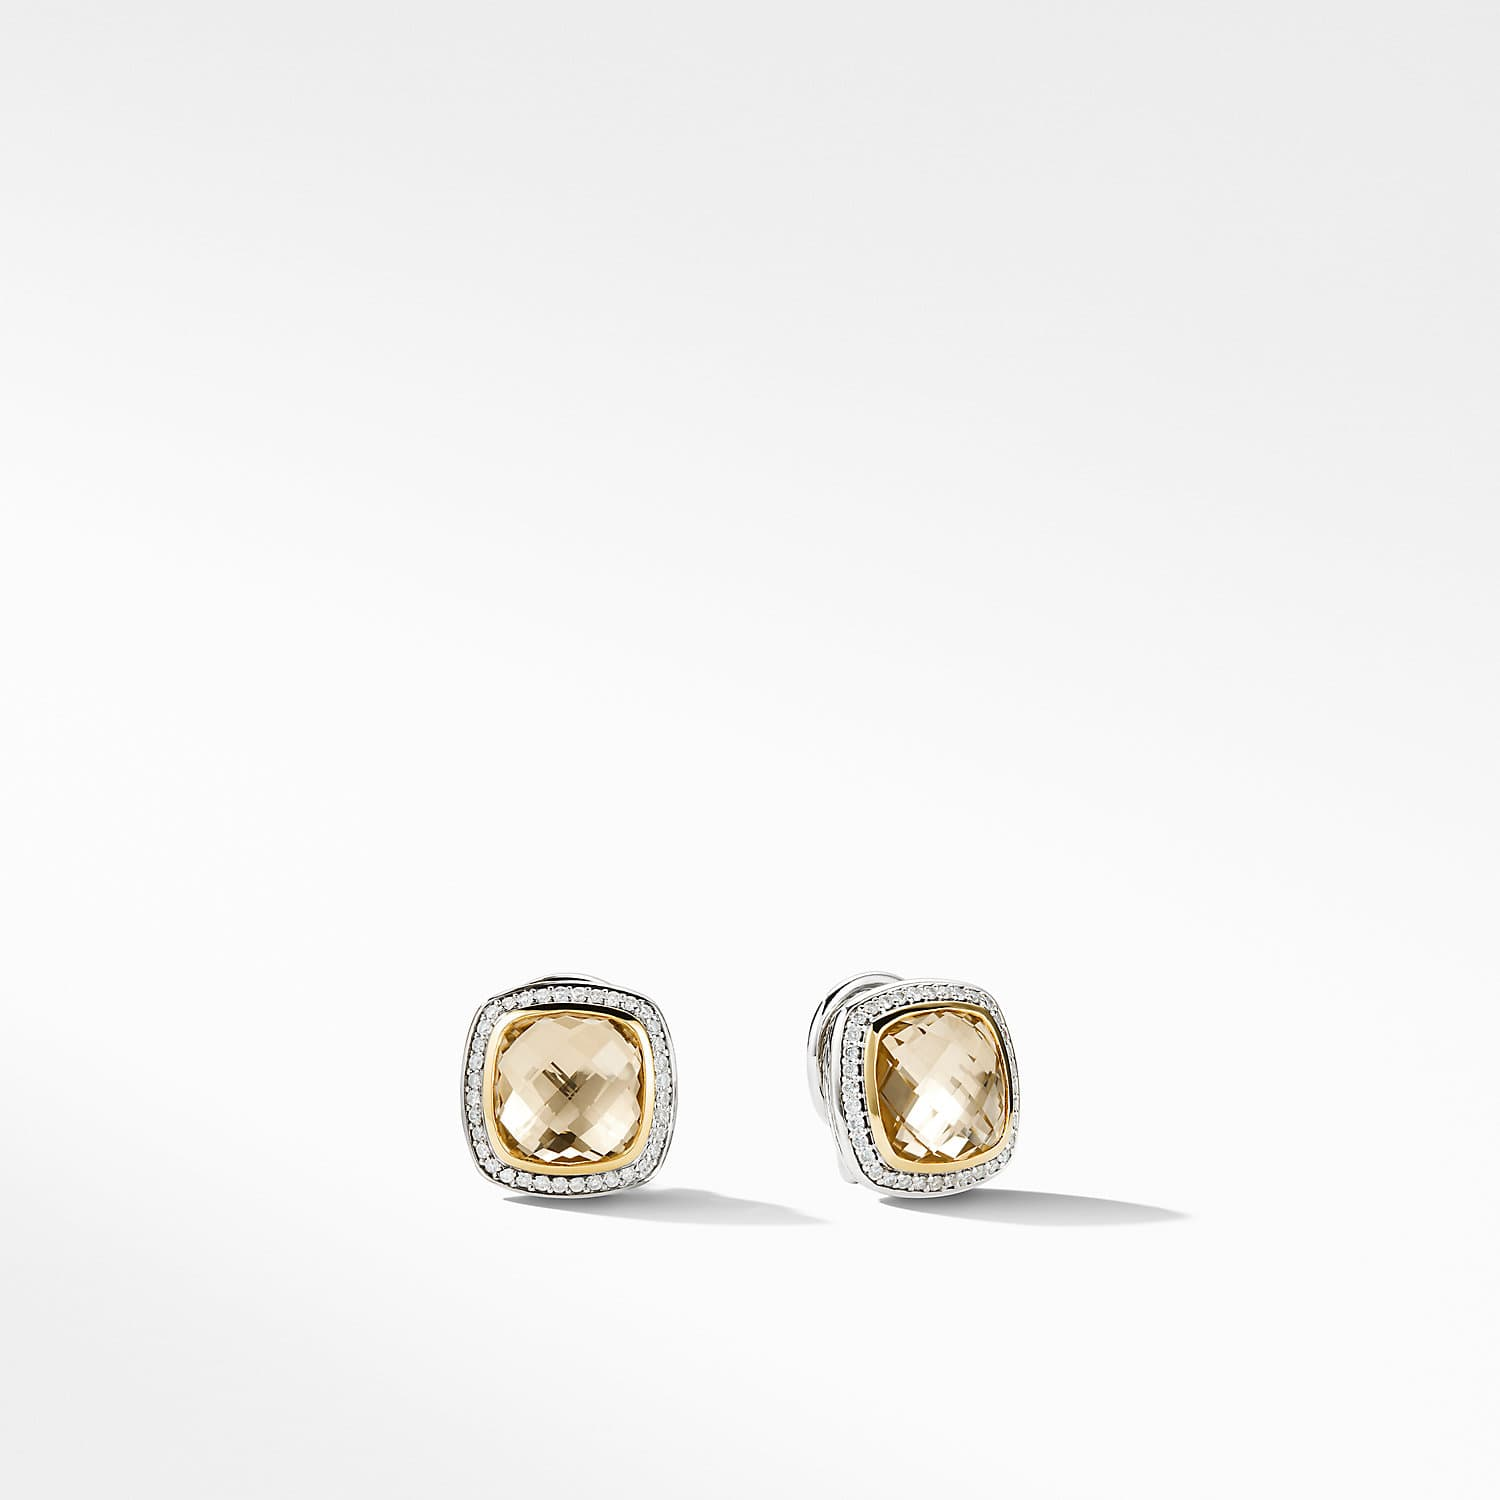 Albion Earrings With Champagne Citrine Diamonds And 18k Gold Product Image